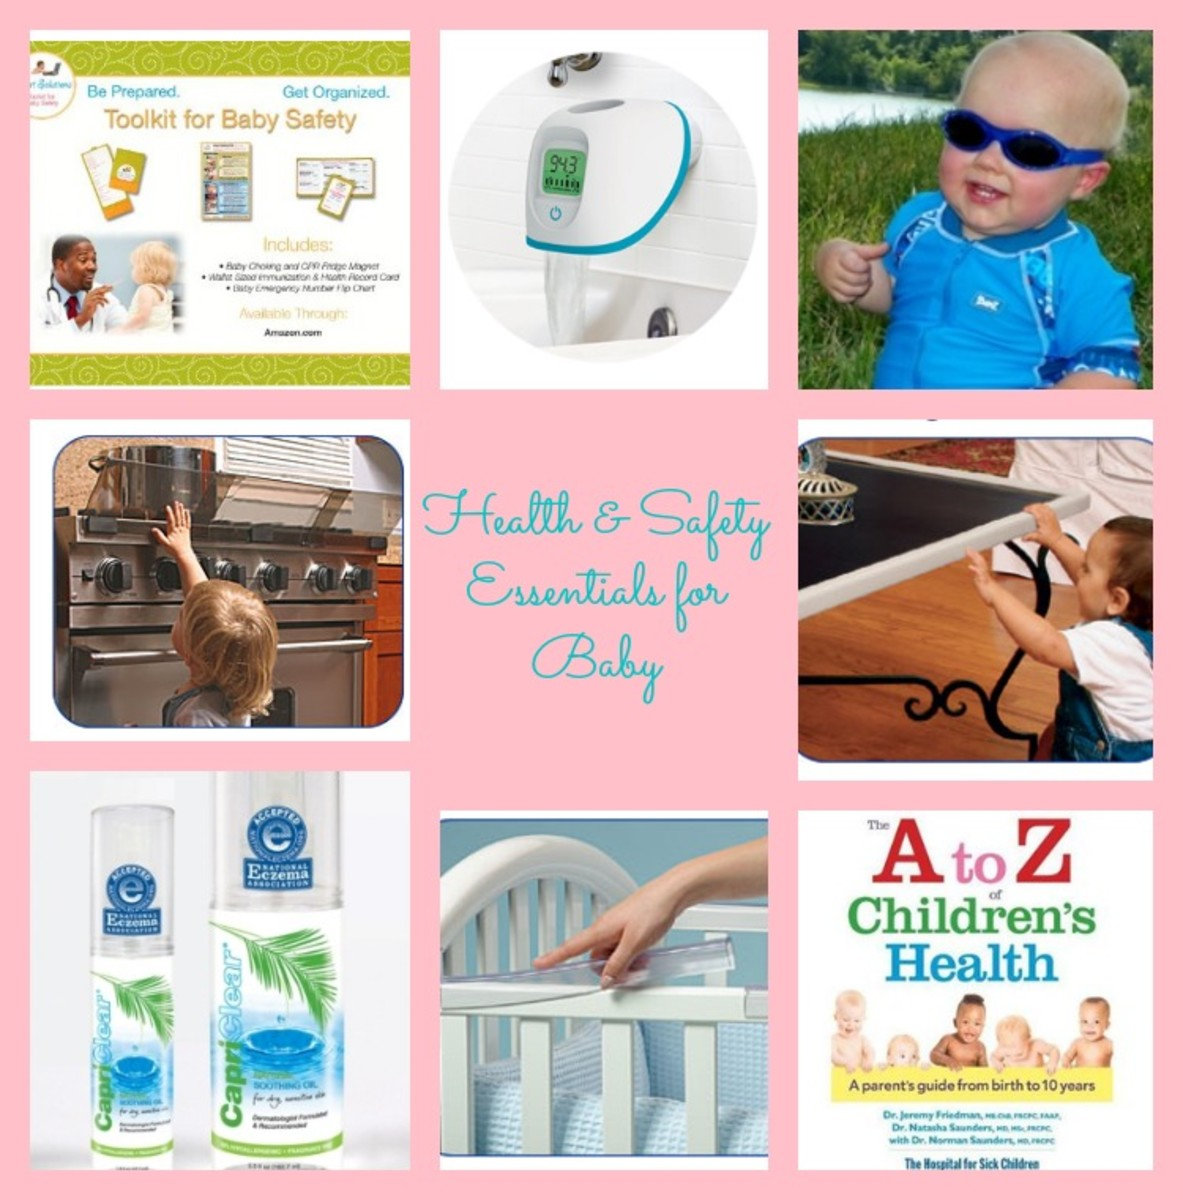 capri clear, a to Z children's health, baby banz, easy access bandages, 4 moms, prince lionheart